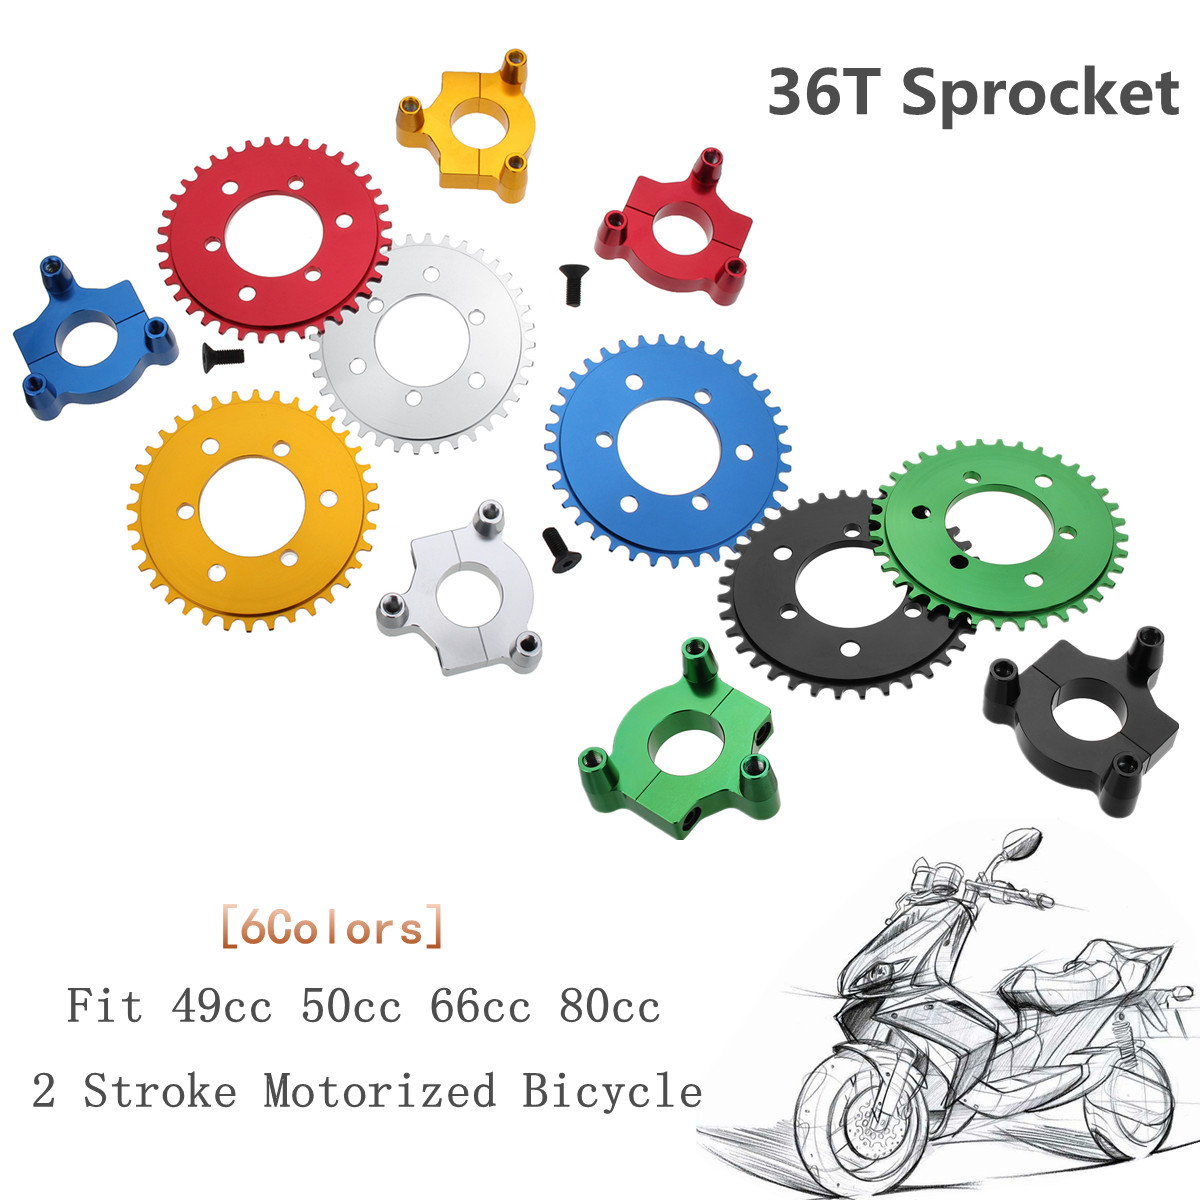 152mm CNC Motorcycle <font><b>36T</b></font> <font><b>Sprocket</b></font> With Adapter For 49cc 50cc 66cc 80cc 2 Stroke Motorized Bicycle image